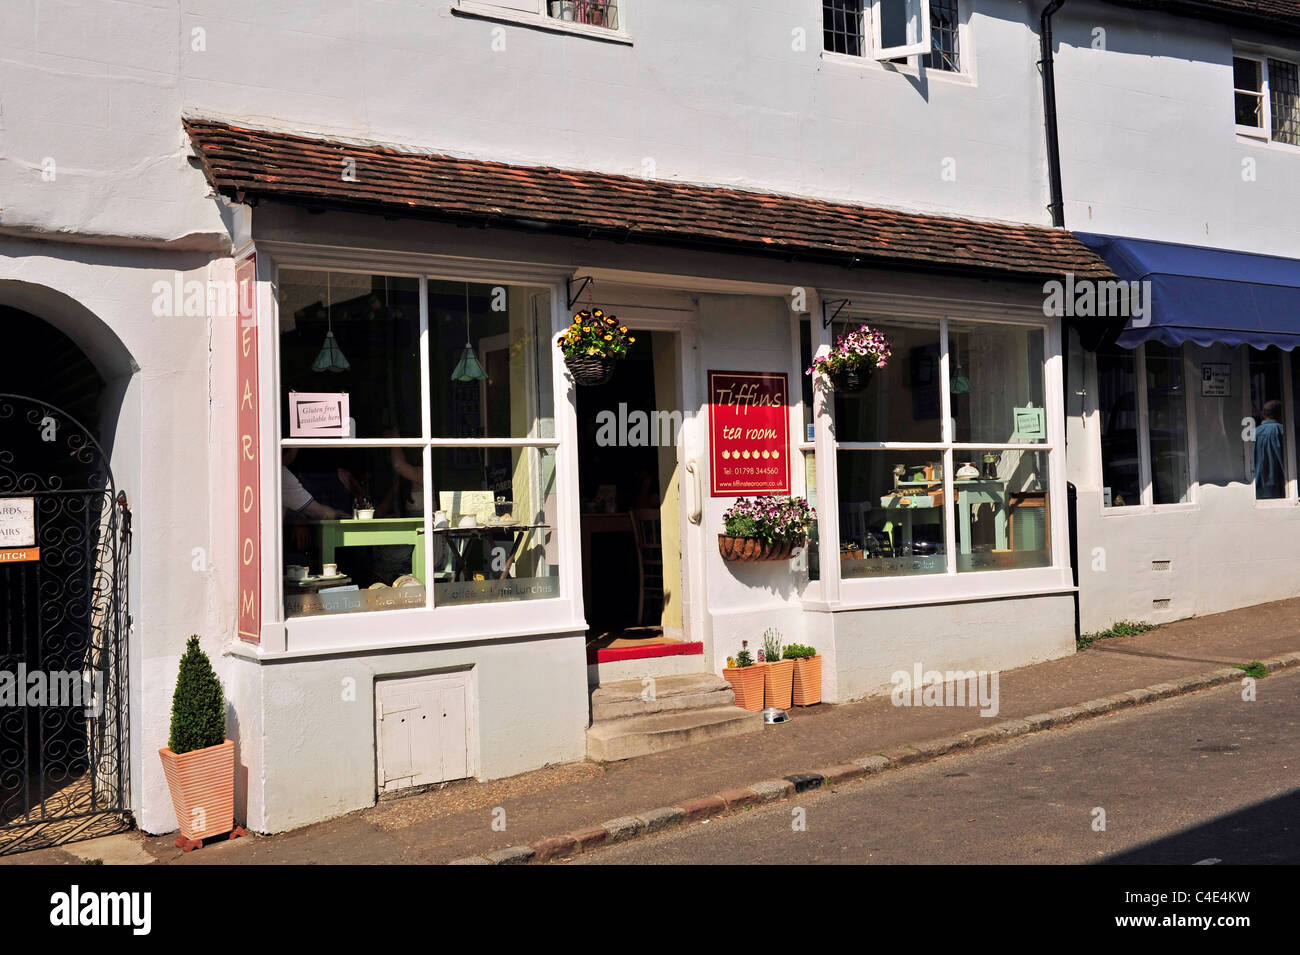 Tearooms along shopping street, Petworth, West Sussex, England, UK, Western Europe. Stock Photo